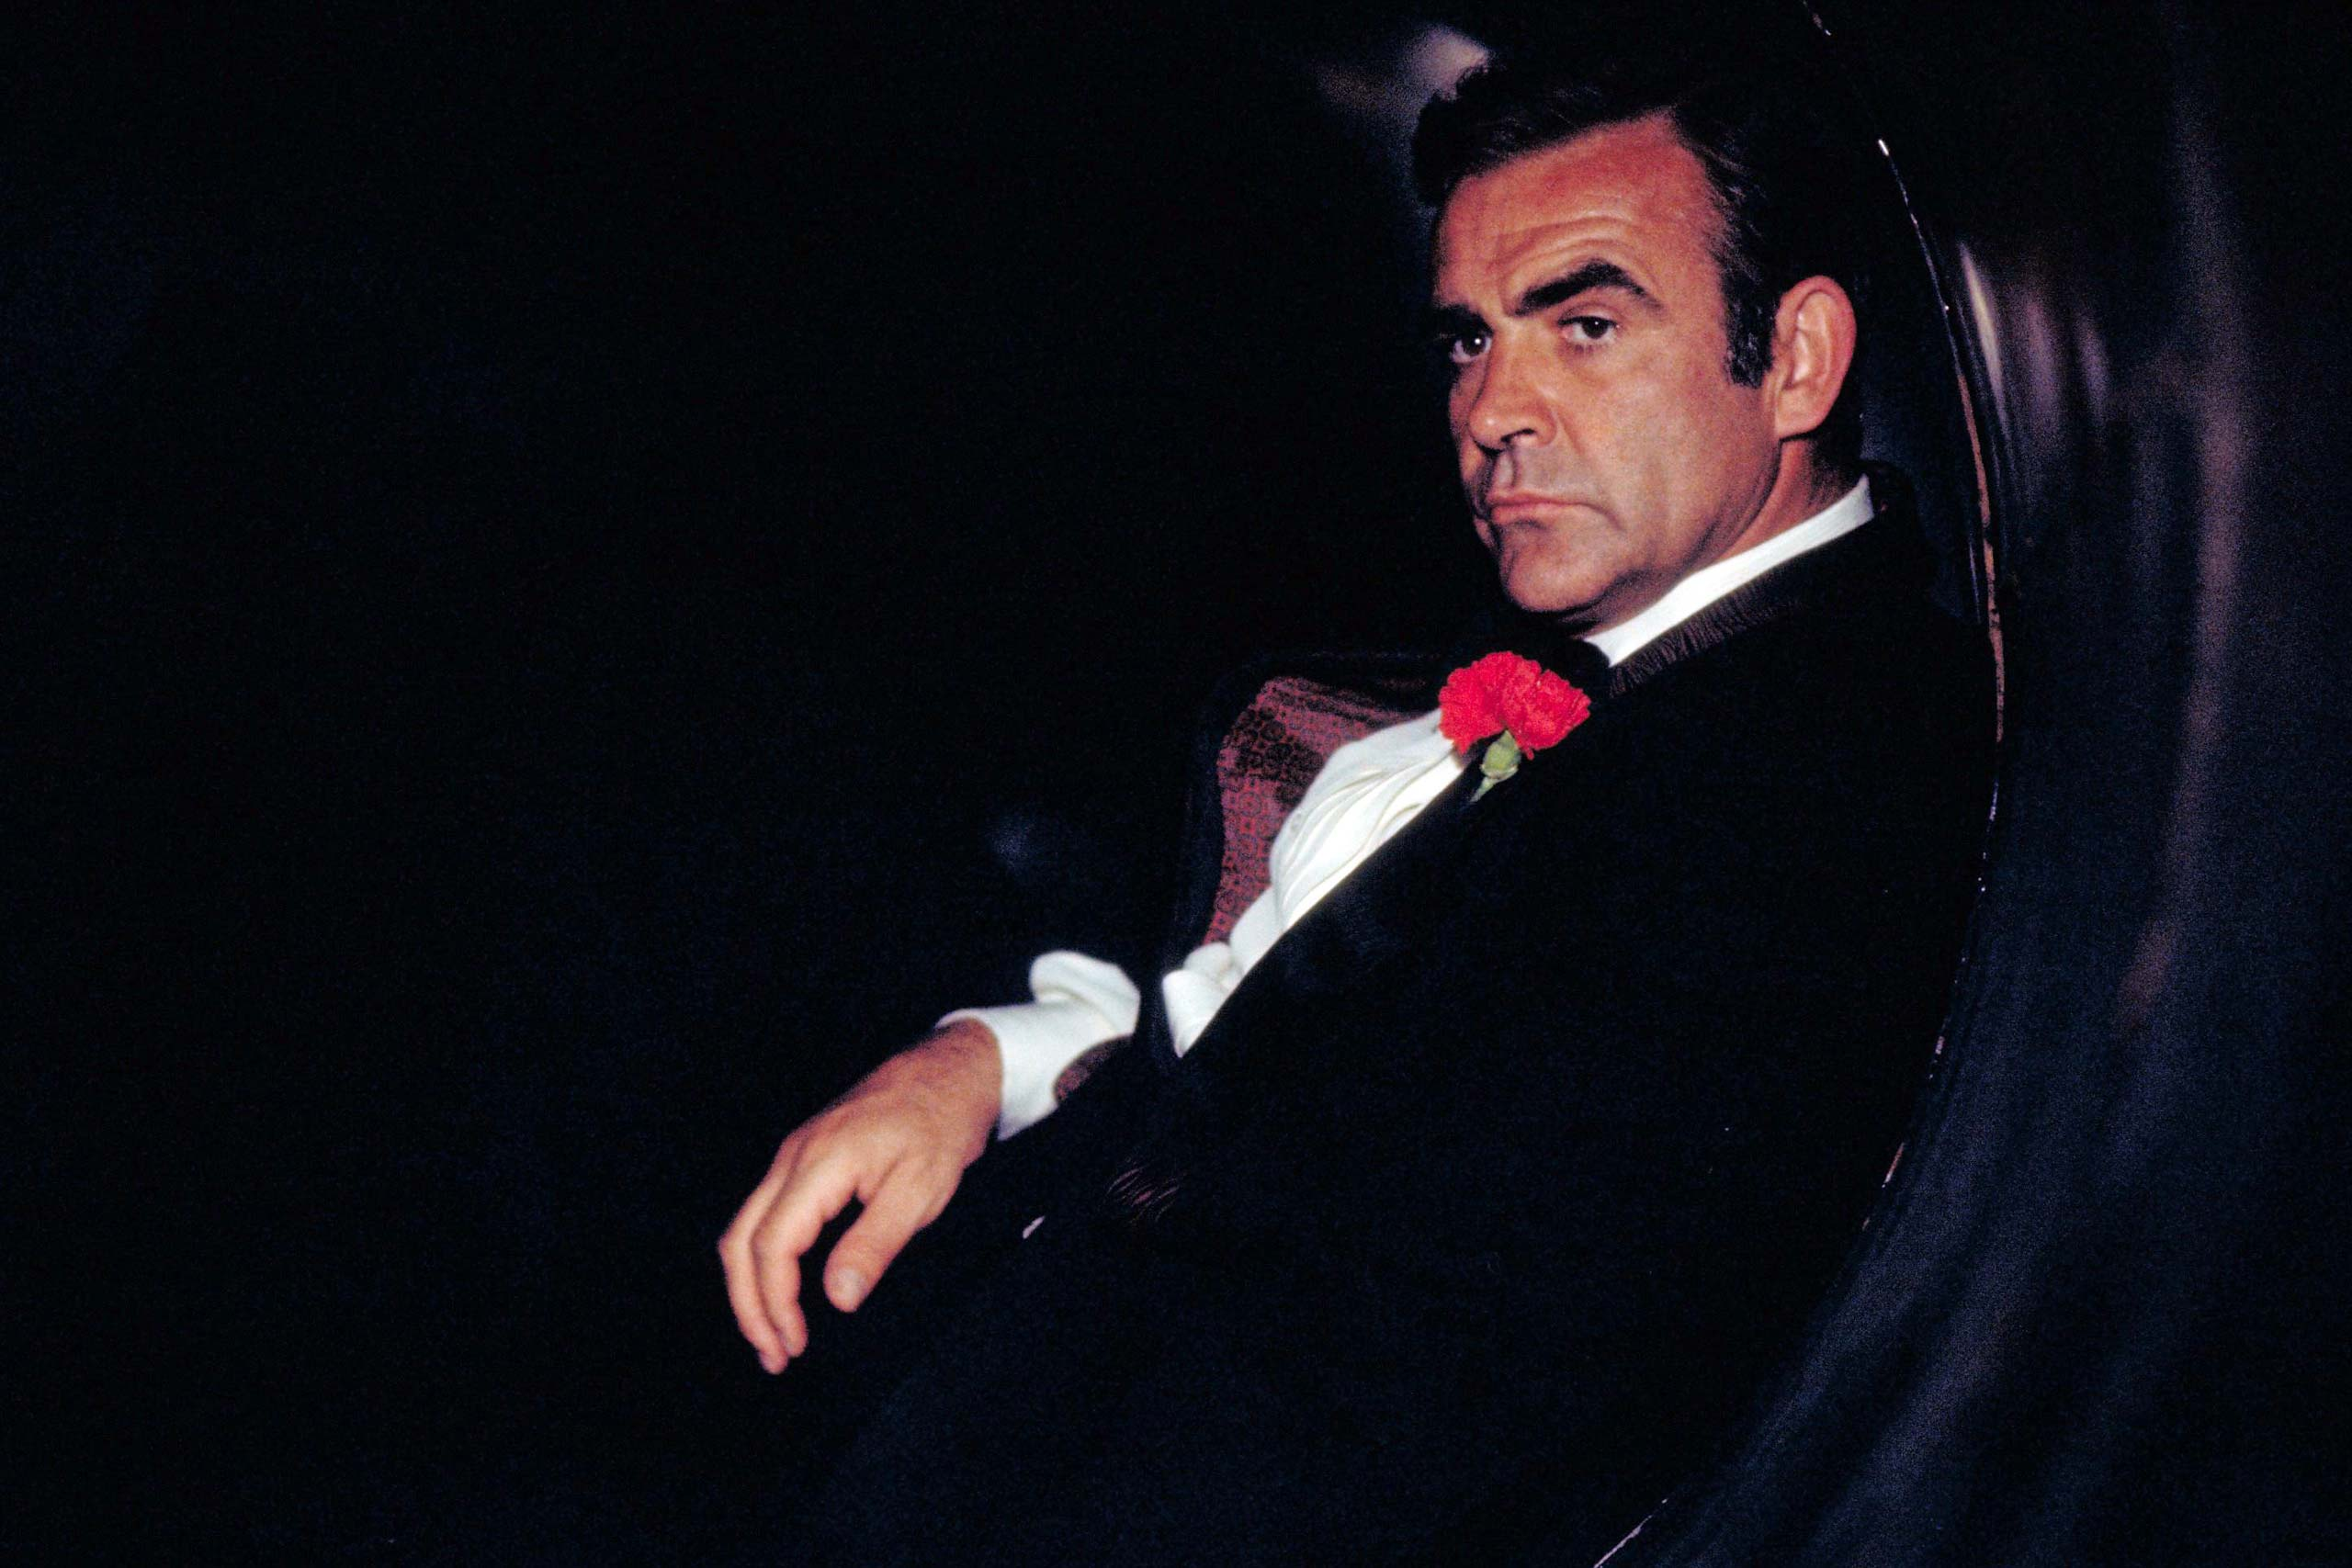 <strong><i>Diamonds Are Forever</i> (1971) - Sean Connery</strong>